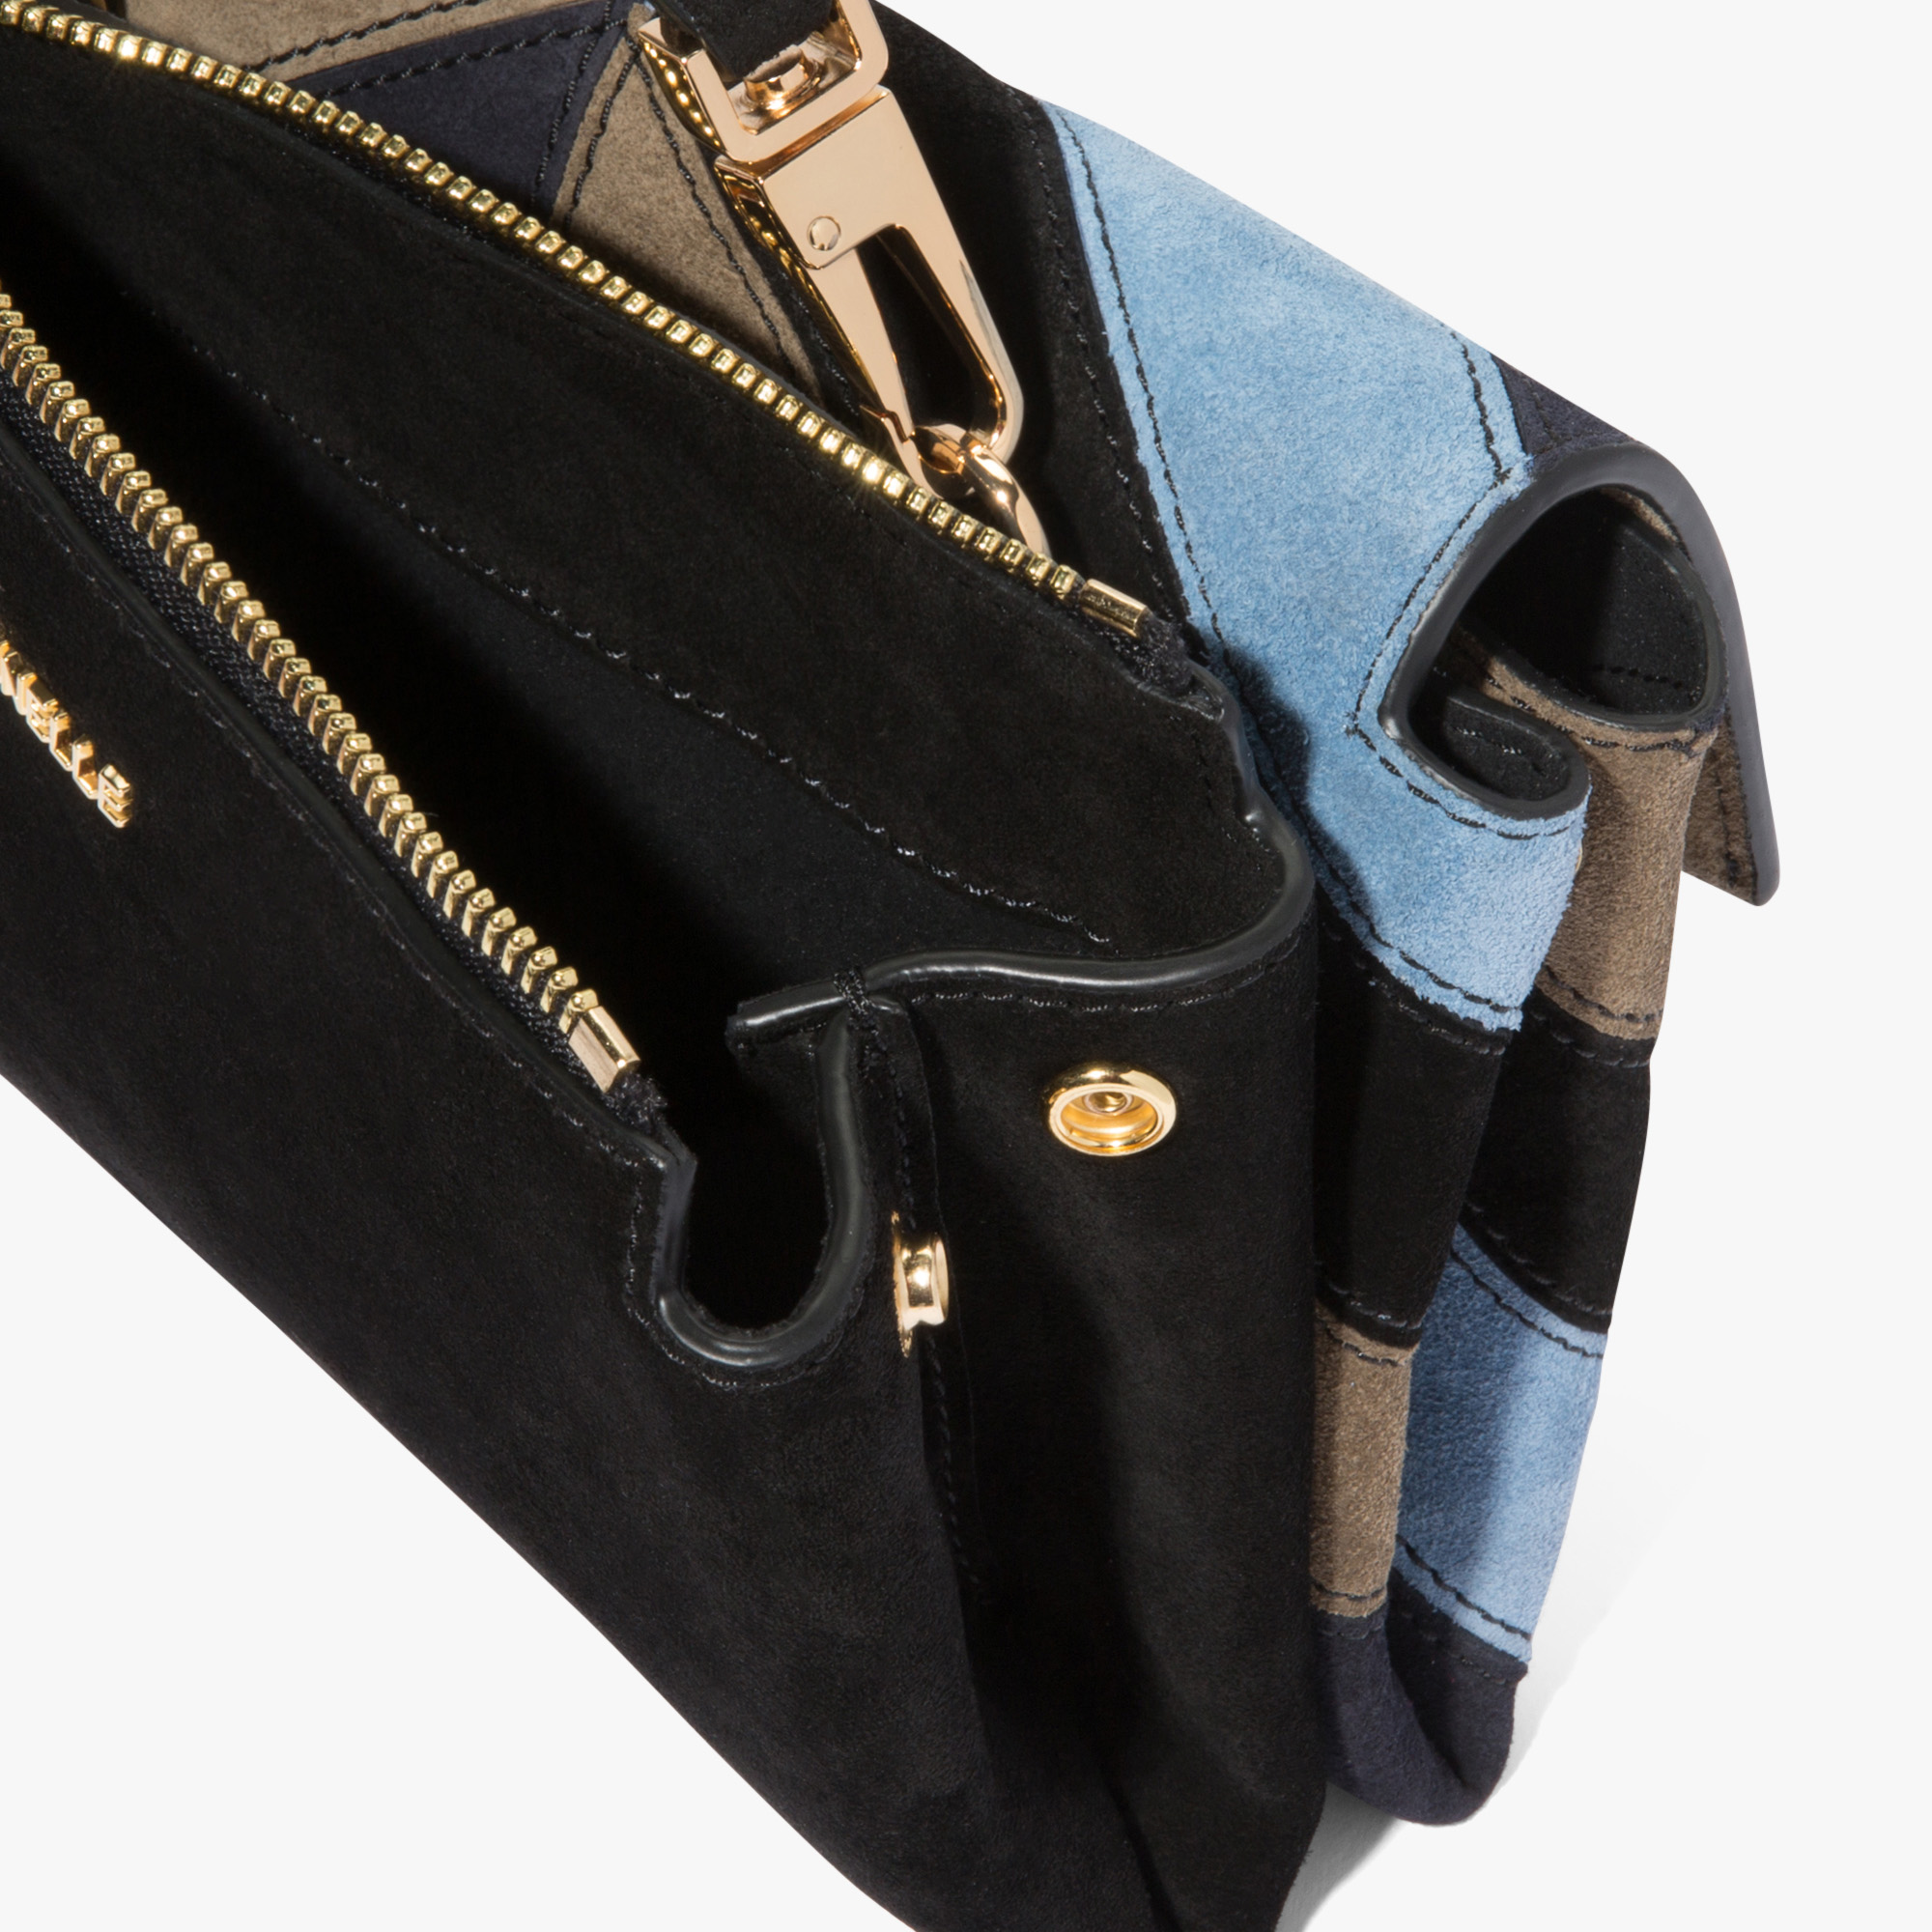 Arlettis suede and leather mini bag